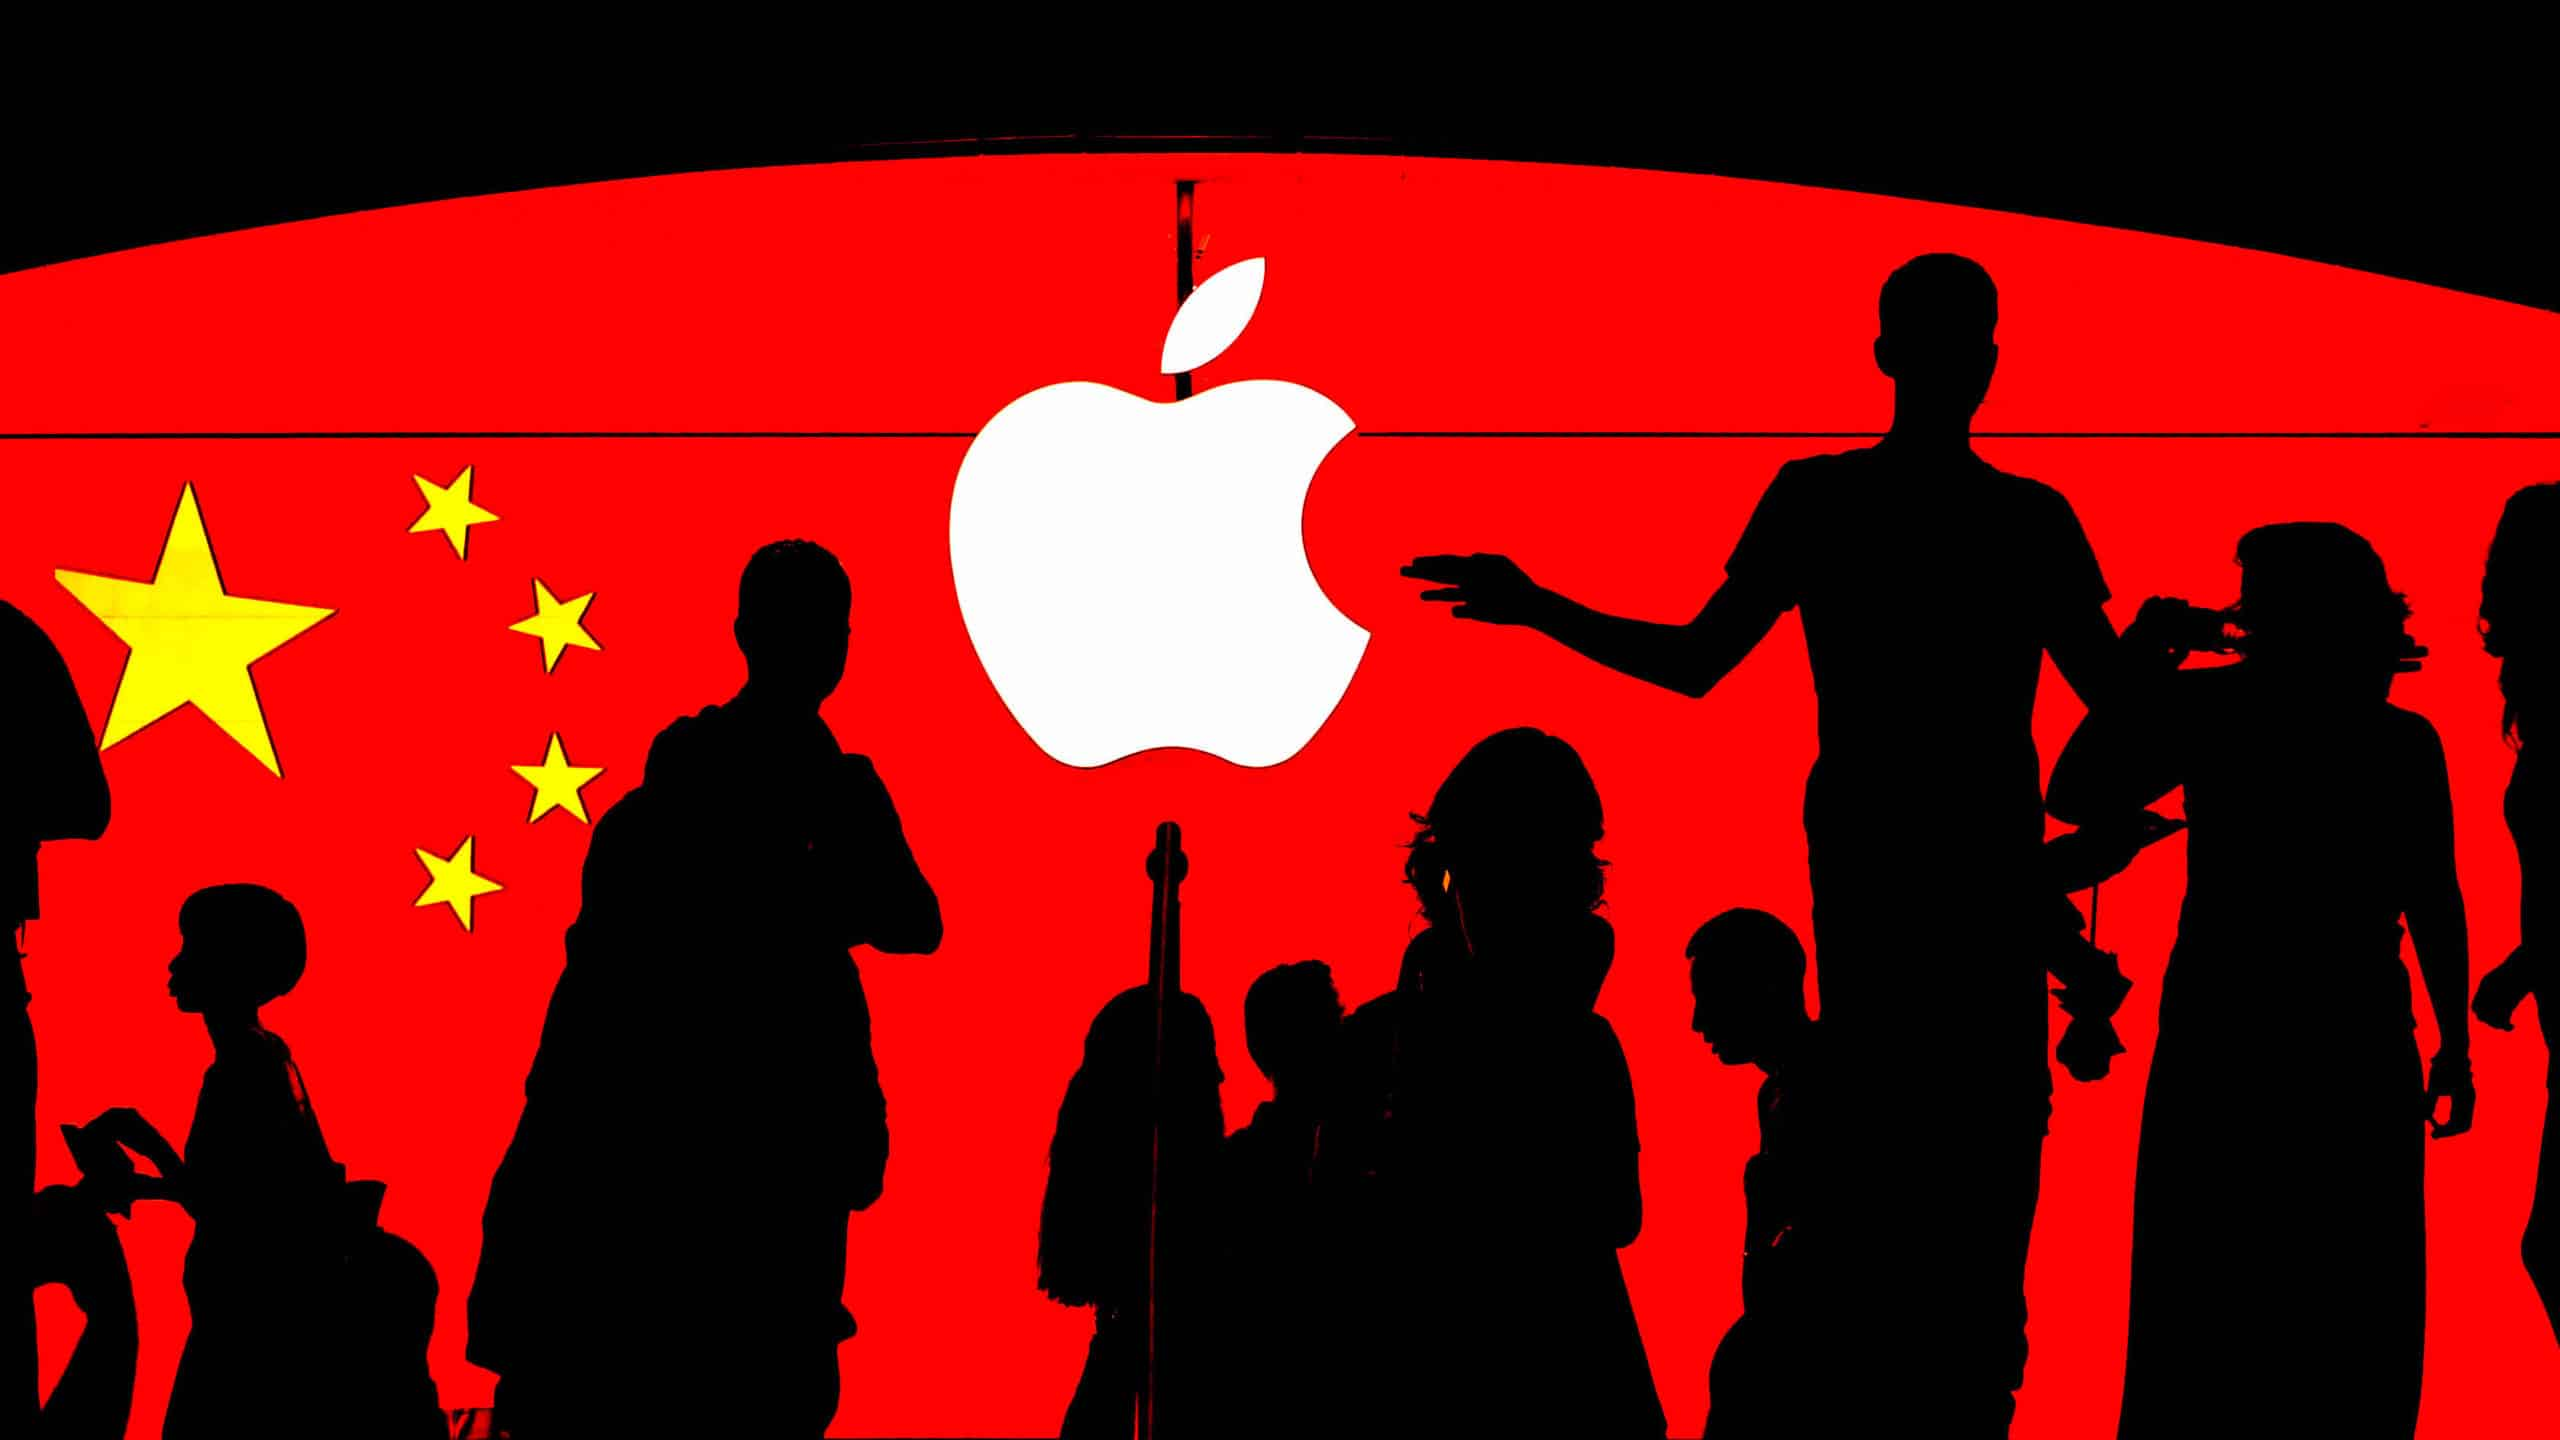 Apple closes its stores in China due to coronavirus